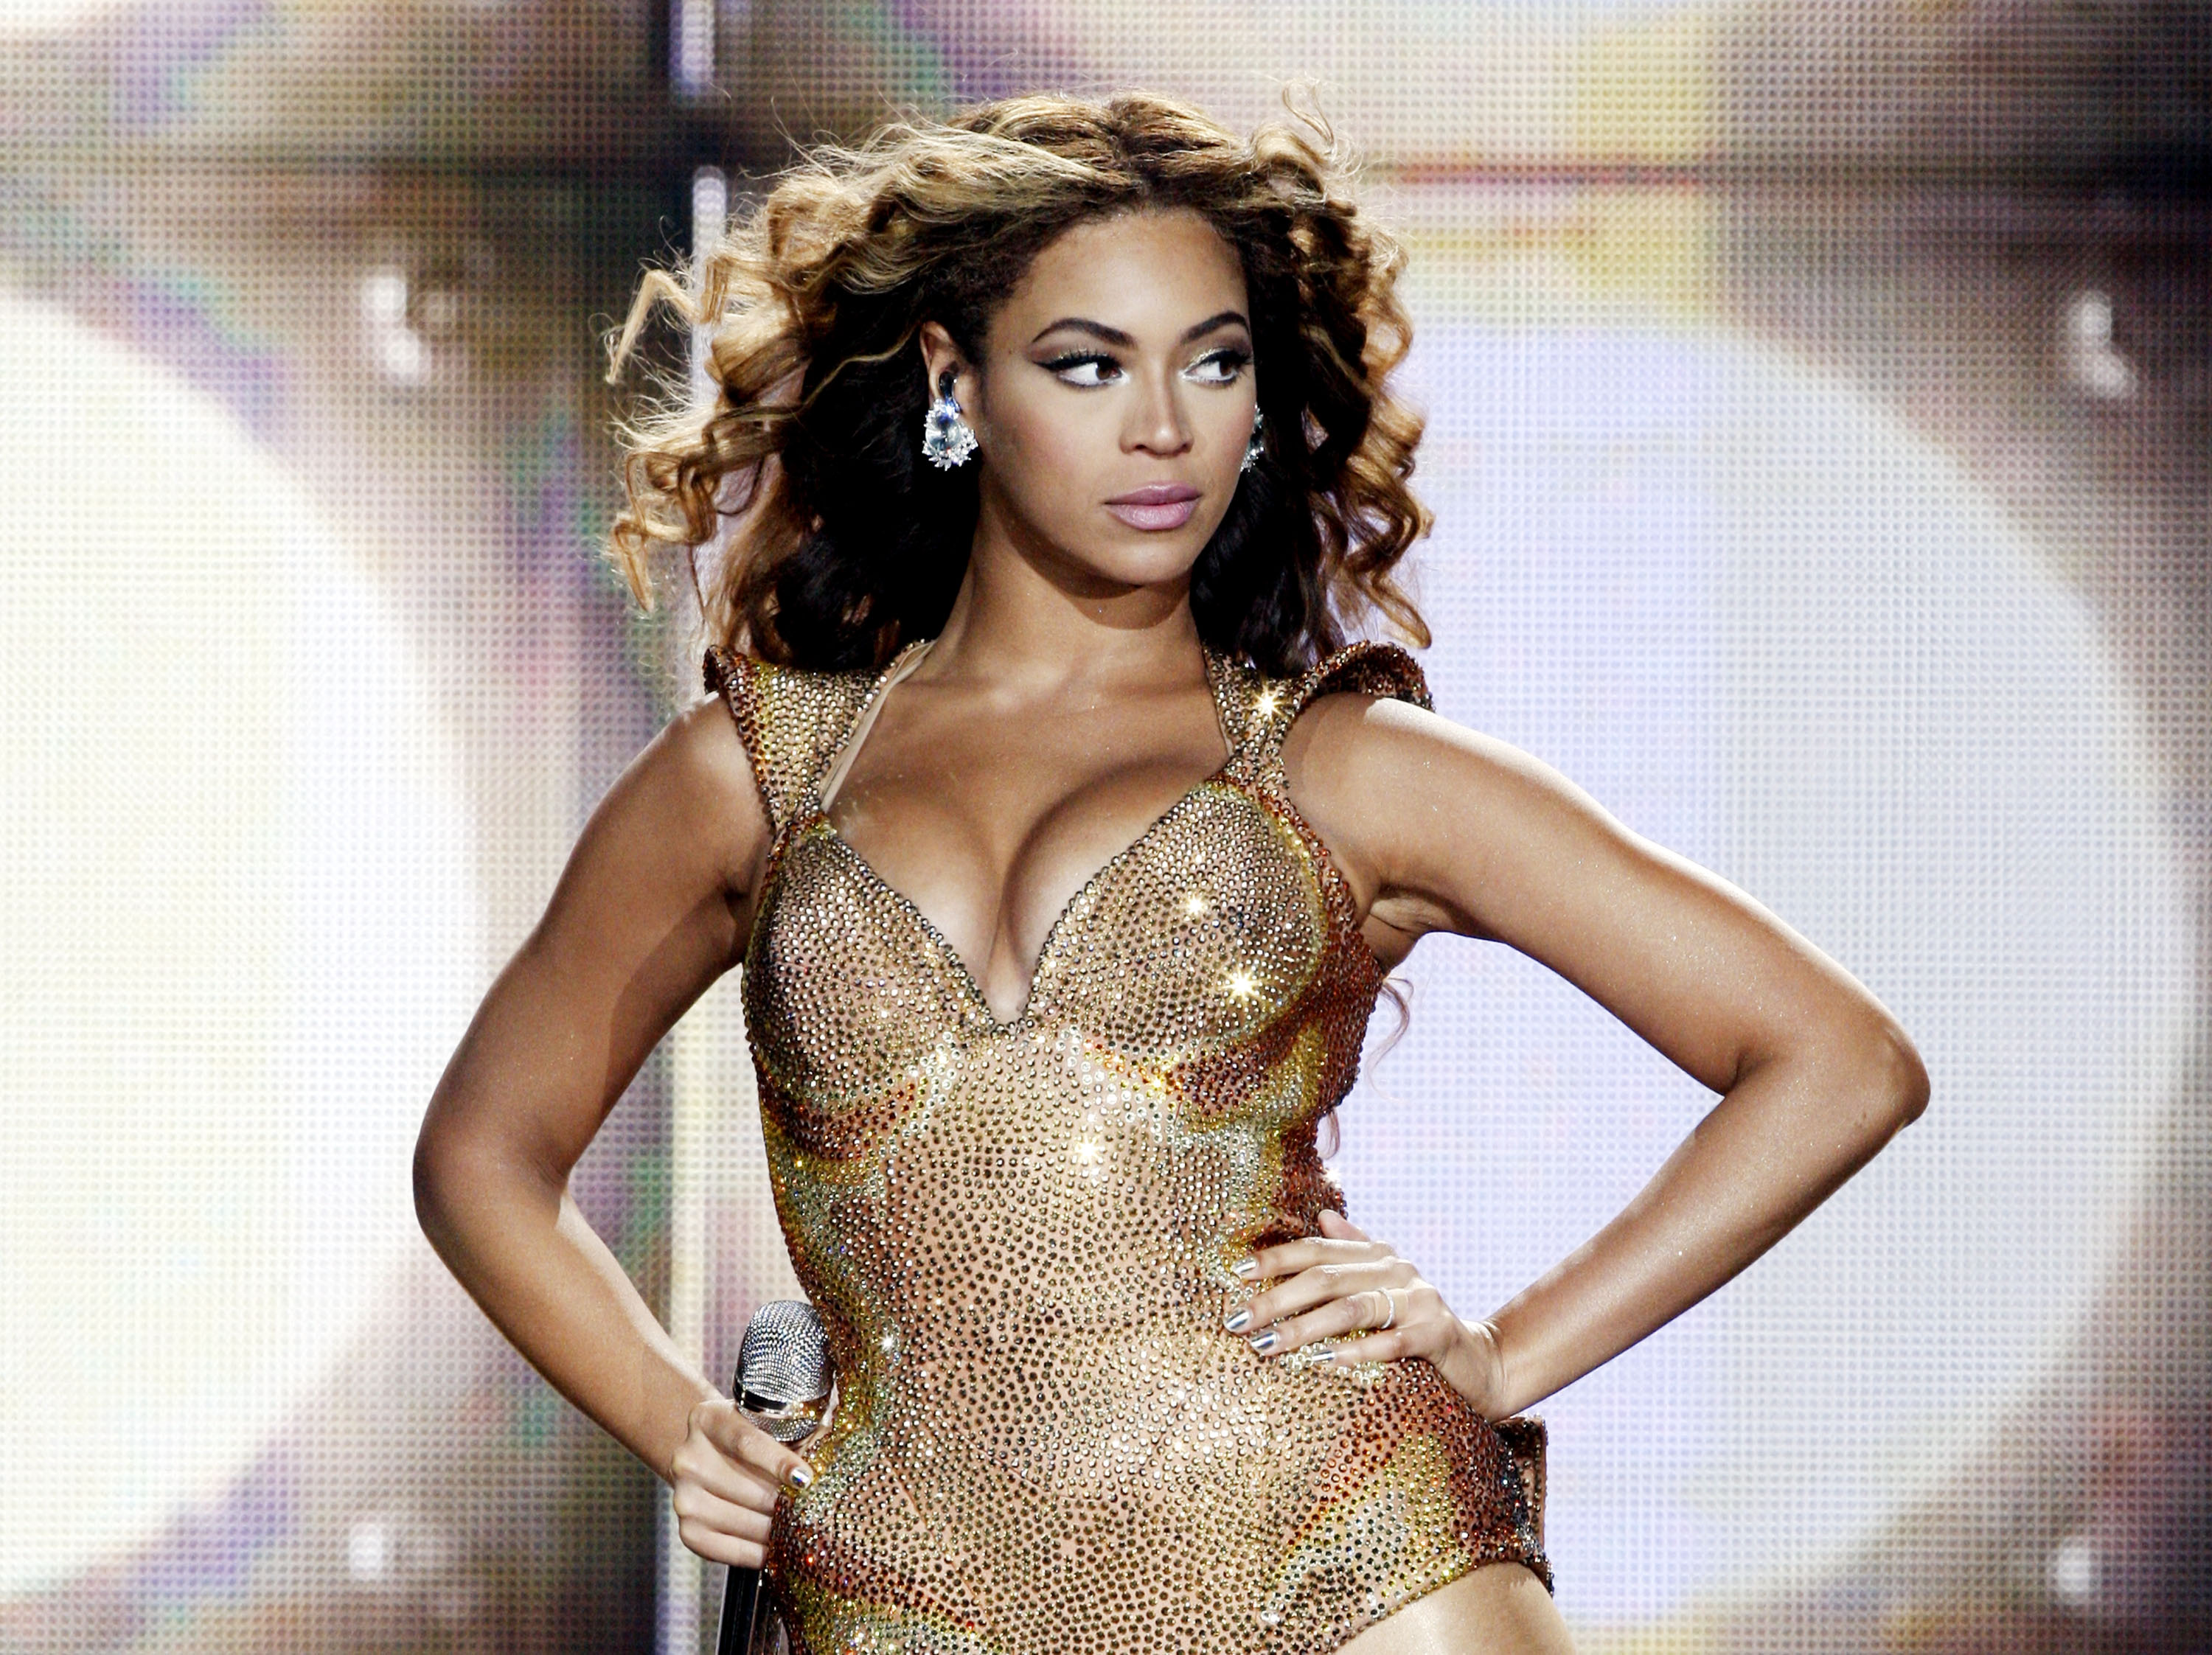 LOS ANGELES, CA - JULY 13:  Singer Beyonce performs at the Staples Center on July 13, 2009 in Los Angeles, California.  (Phot